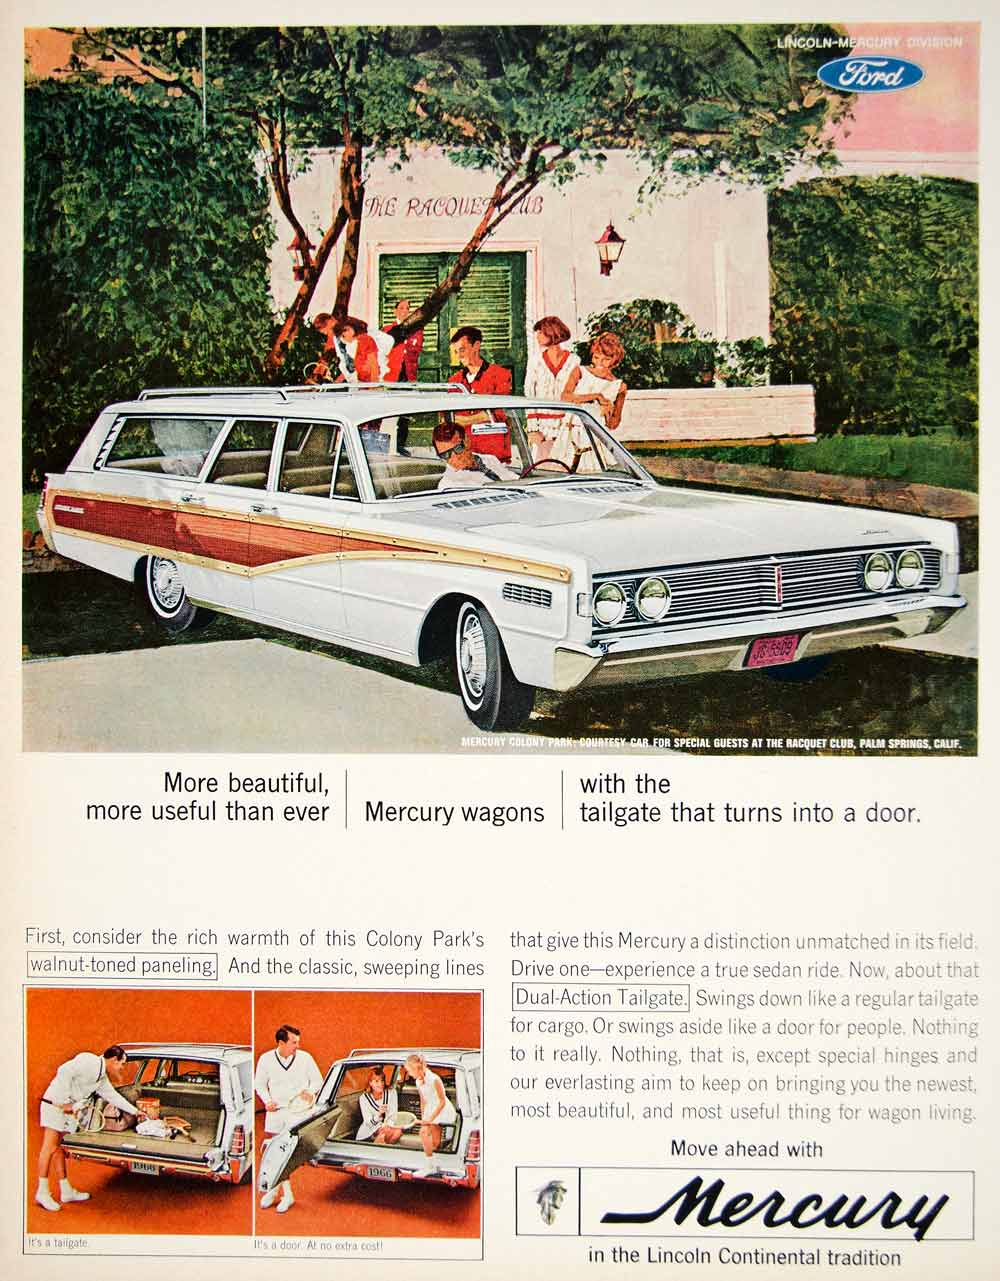 1966 Mercury Colony Park Tailgate Turns Into a Door Vintage Print Ad